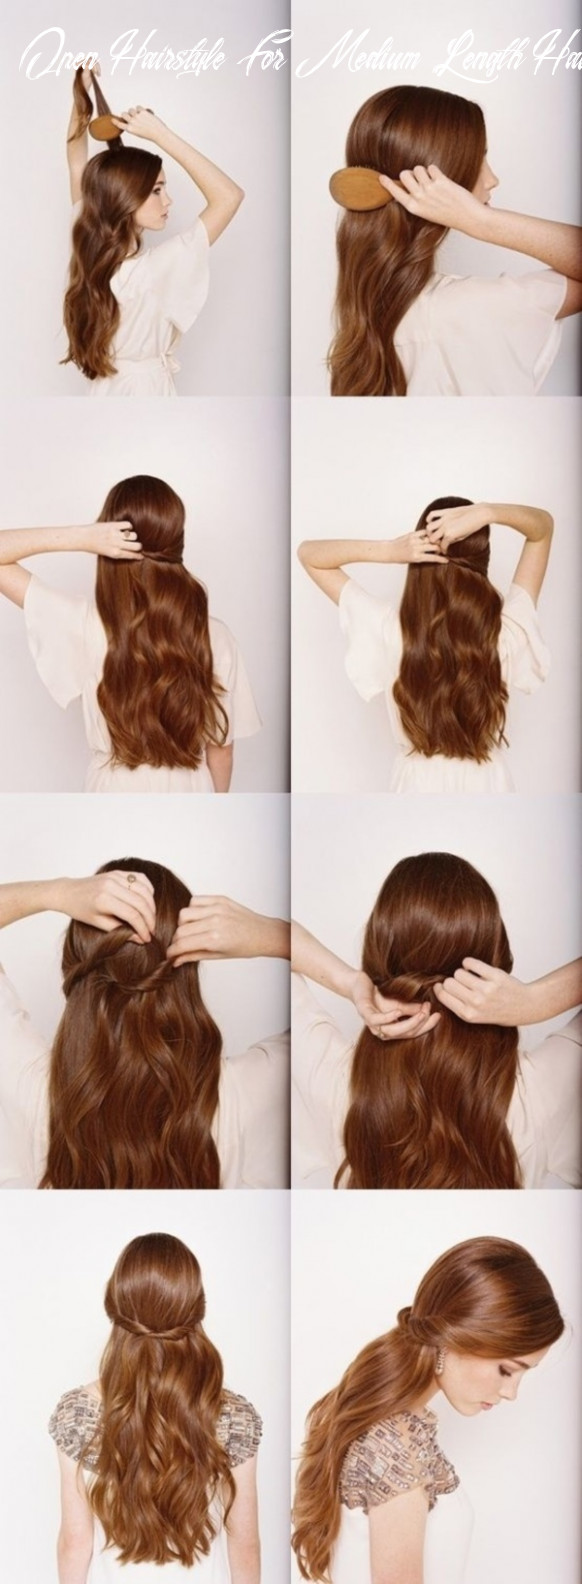 11 easy diy hairstyles for medium and long hair to snatch attention open hairstyle for medium length hair